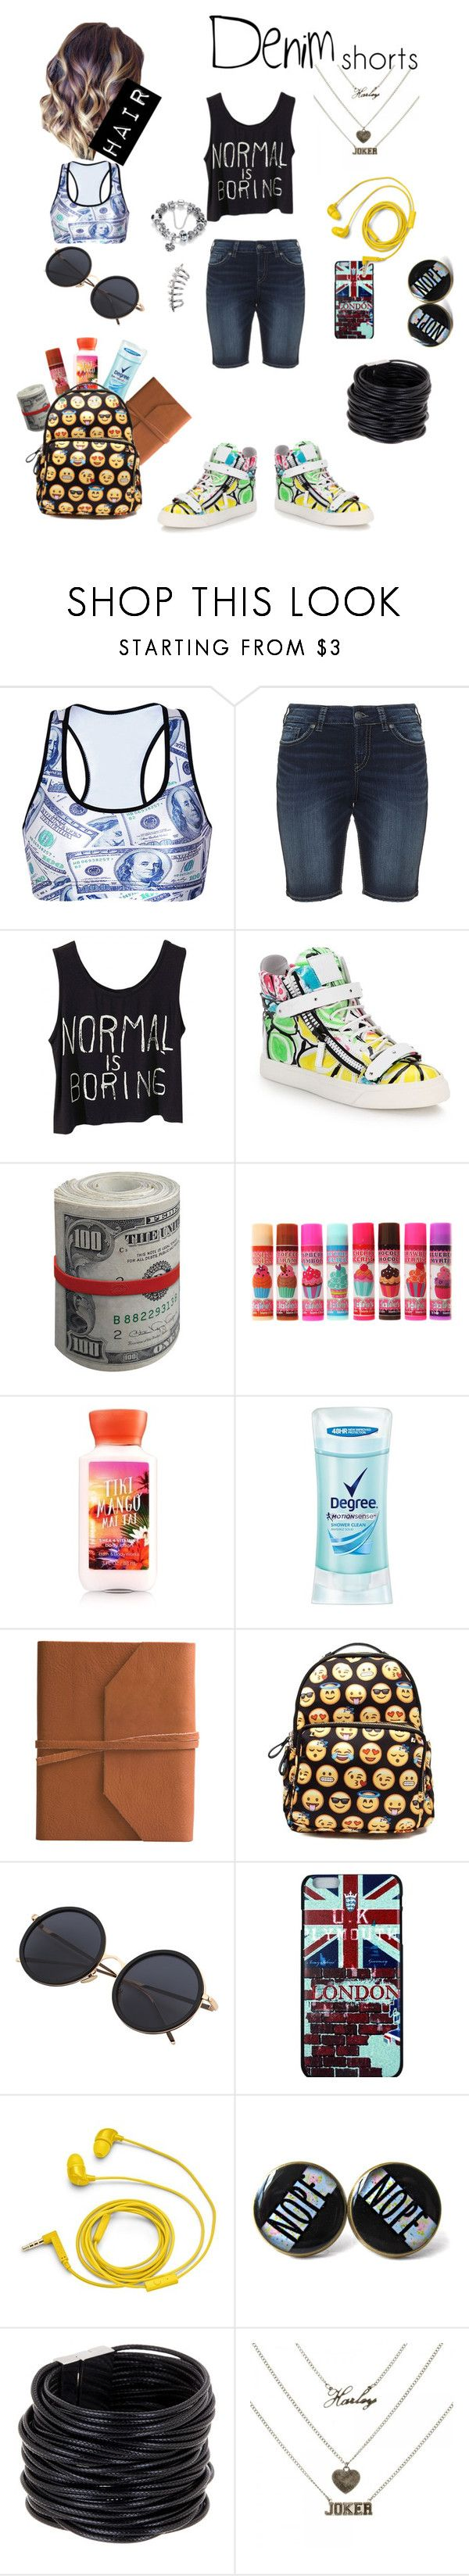 """""""normal is boring"""" by fashionforwardfaith ❤ liked on Polyvore featuring Silver Jeans Co., Giuseppe Zanotti, Degree, Eccolo, FOSSIL, Saachi, jeanshorts, denimshorts and cutoffs"""